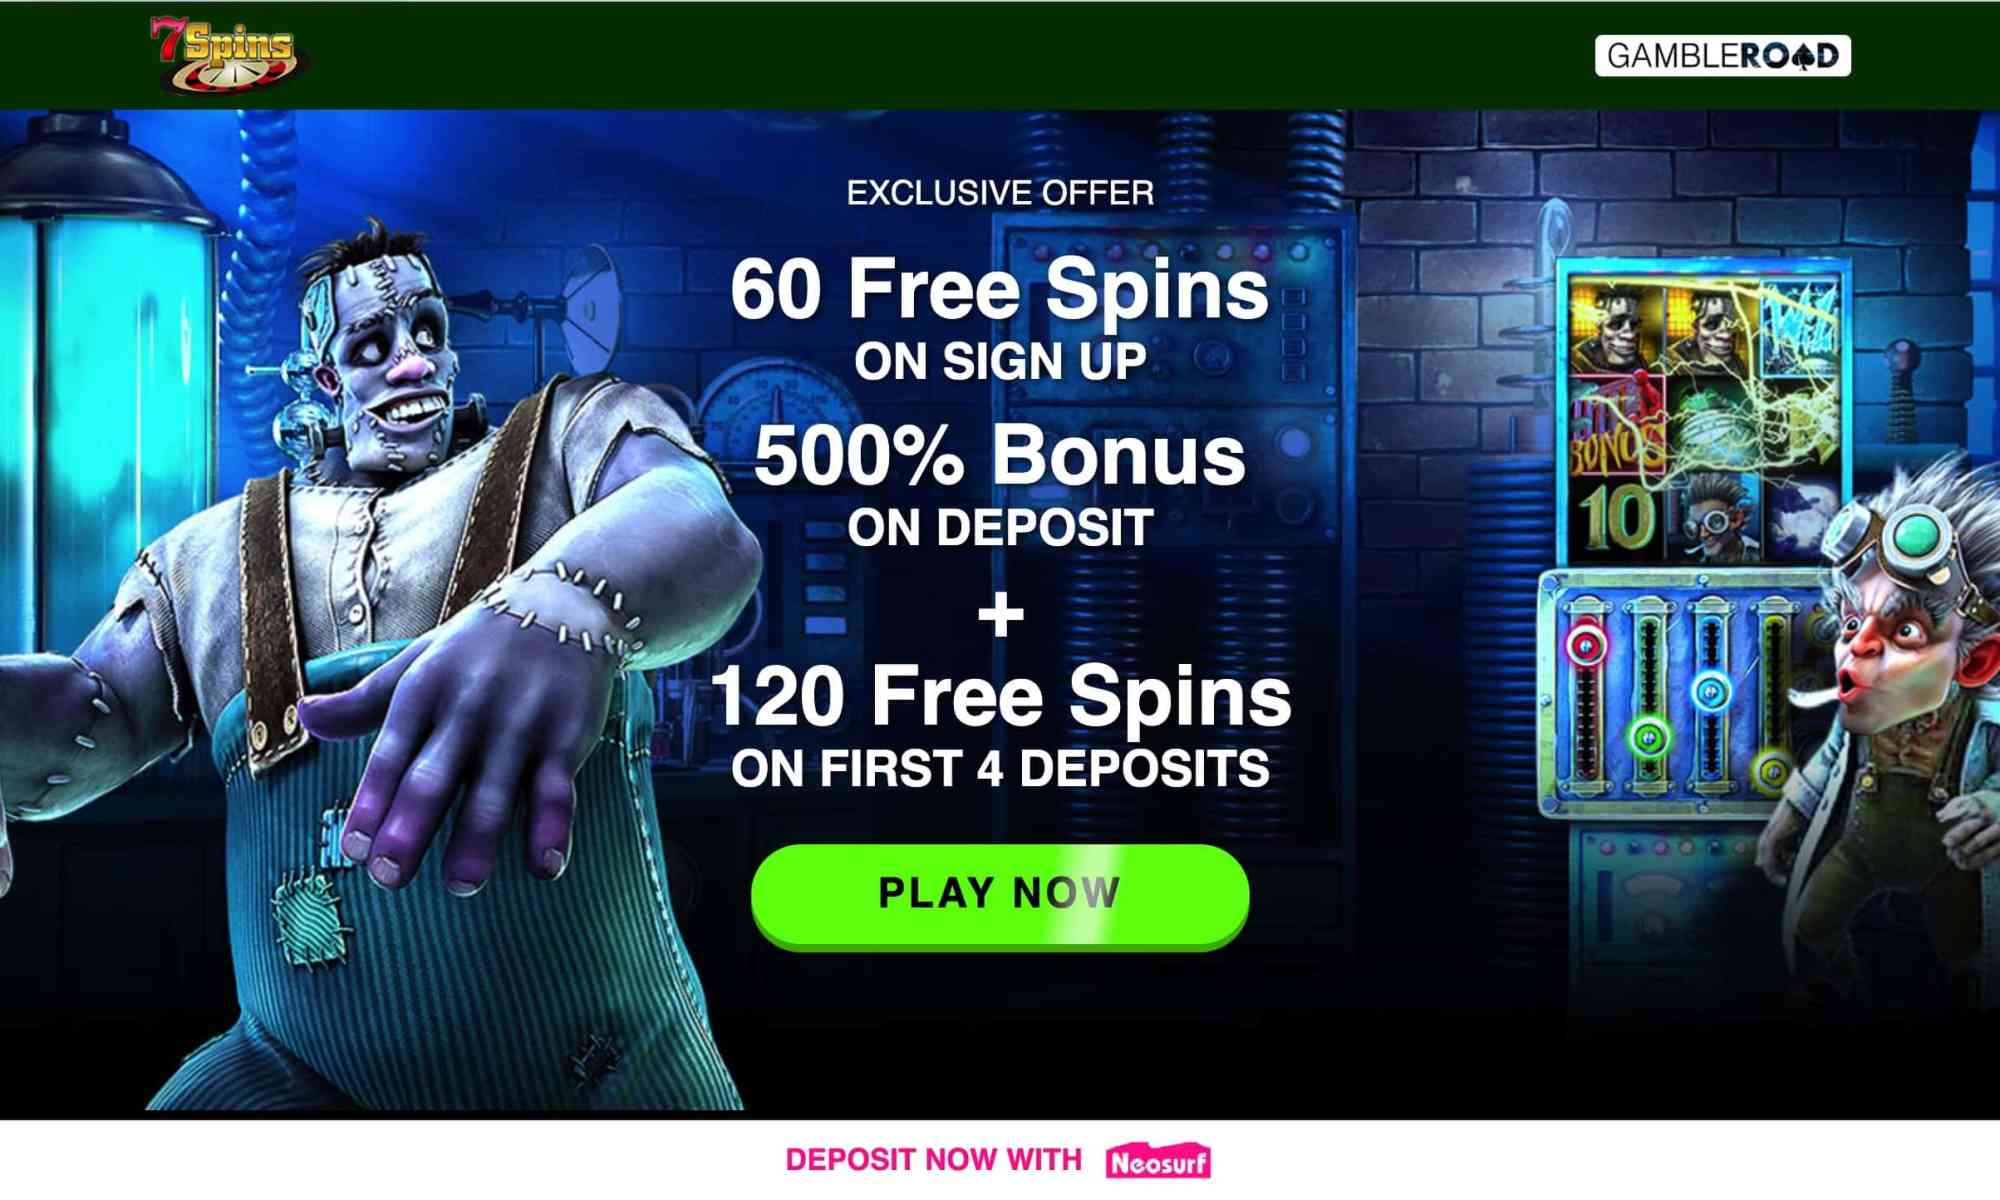 7 Spins Casino - Vip Sign Up Bonus Of 500% + Free Spins